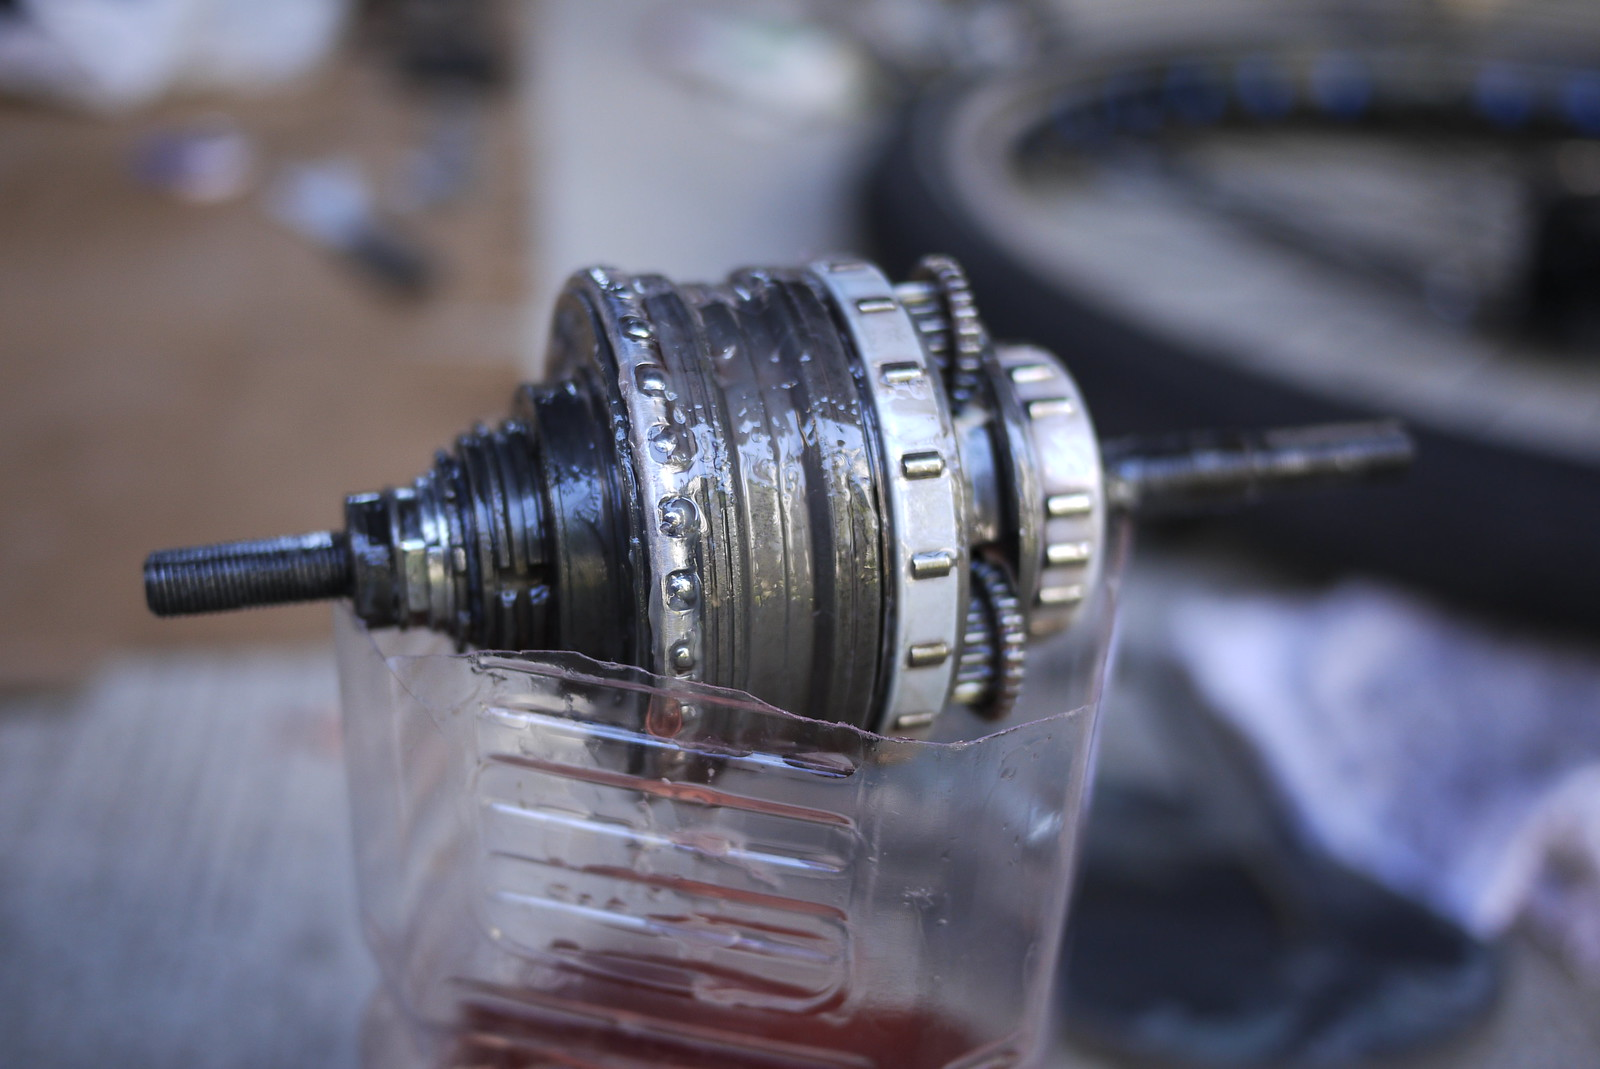 Shimano Alfine 8 Speed Internal Gear Hub (IGH) draining after oil bath (auto transmission fluid - ATF)